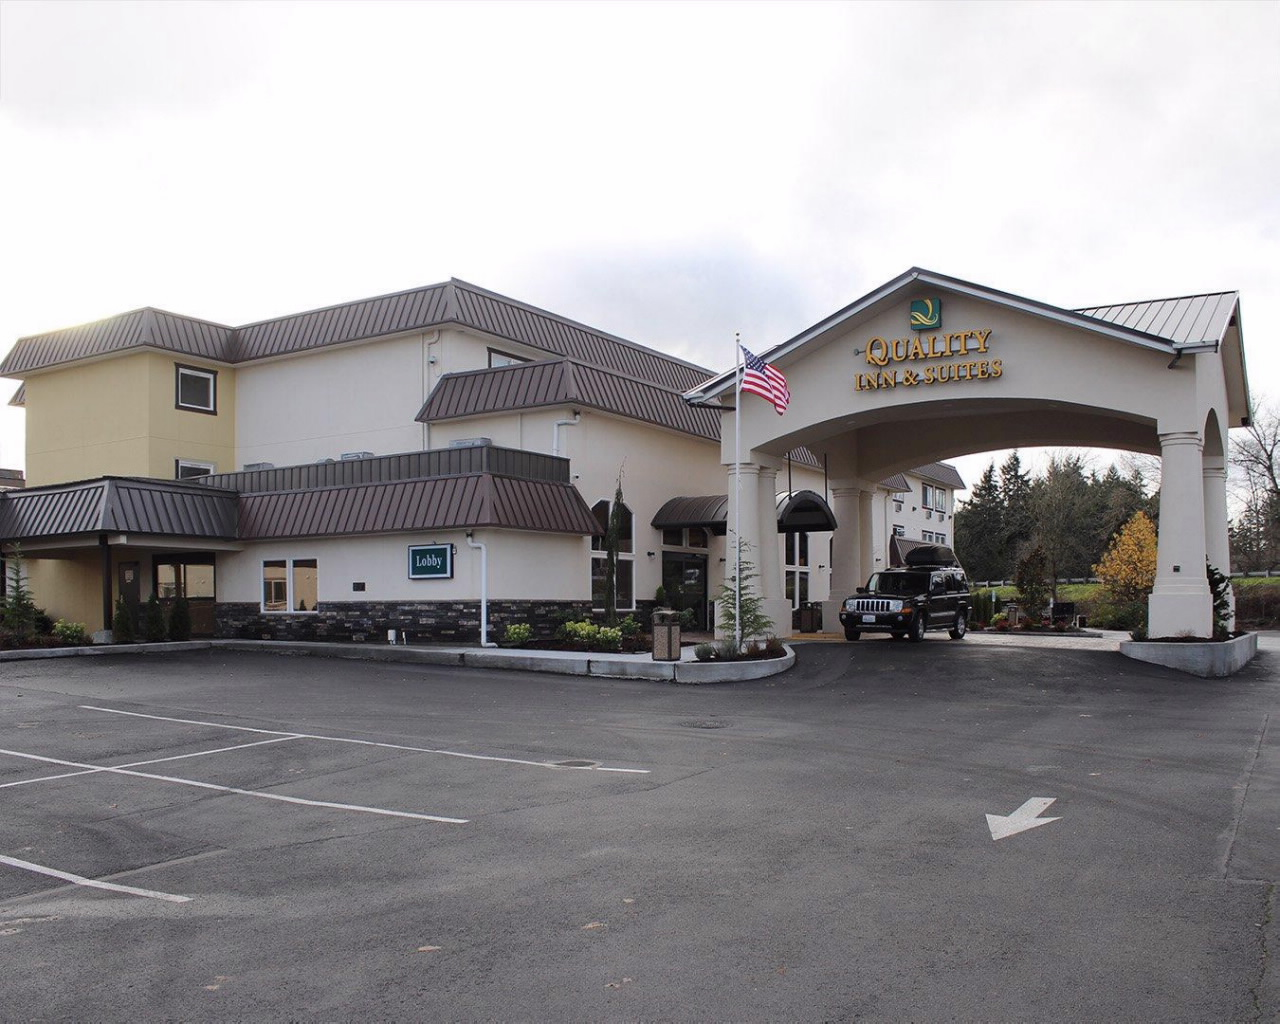 olive garden in tacoma wa is located at i 5 in tacoma place center at 1921 s 72nd street and is convenient to hotels parks and outdoor recreation sites - Olive Garden Tacoma